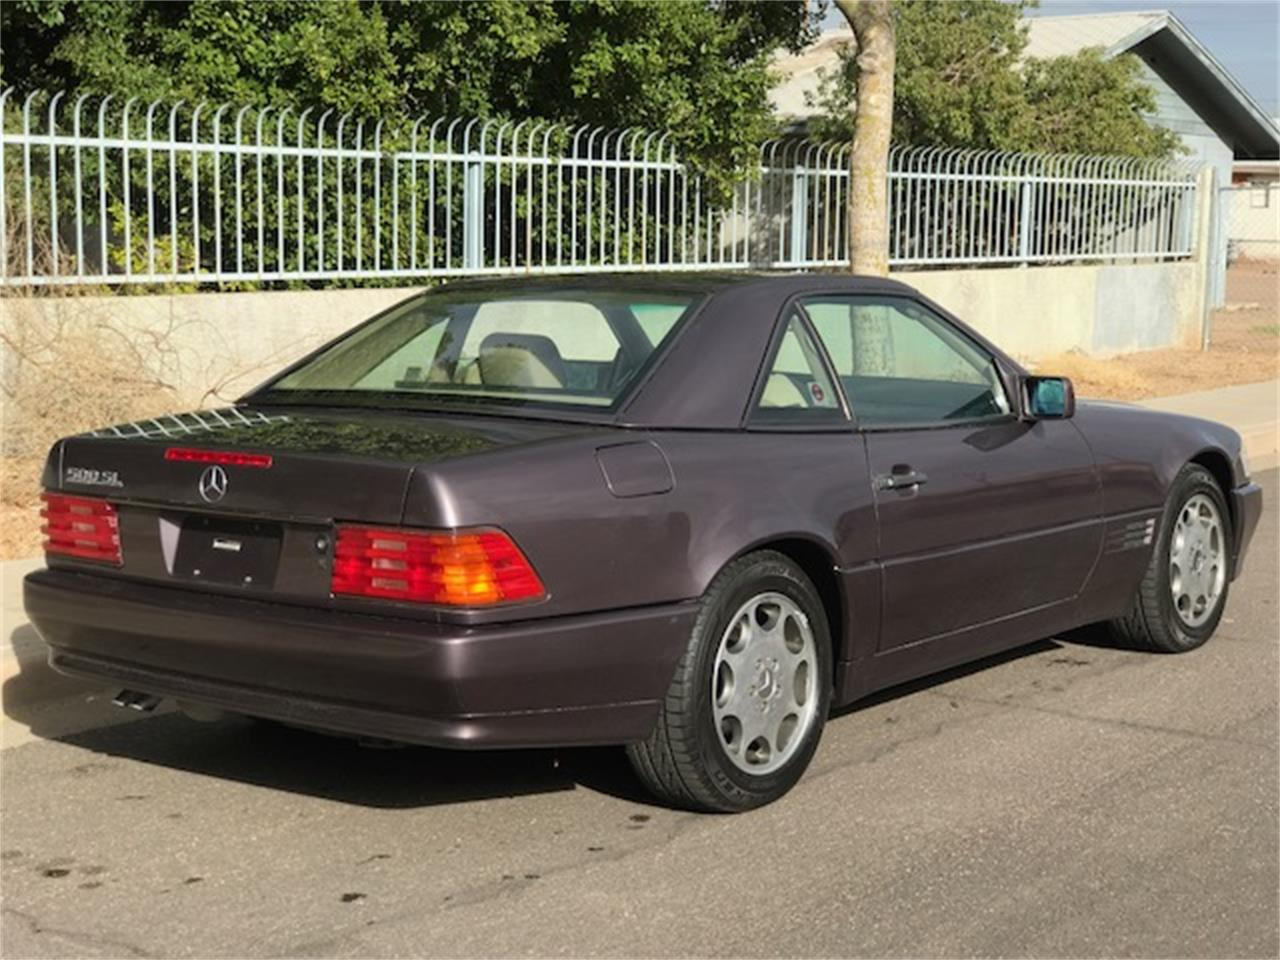 Large Picture of '92 SL500 Auction Vehicle Offered by Russo and Steele - MOE6